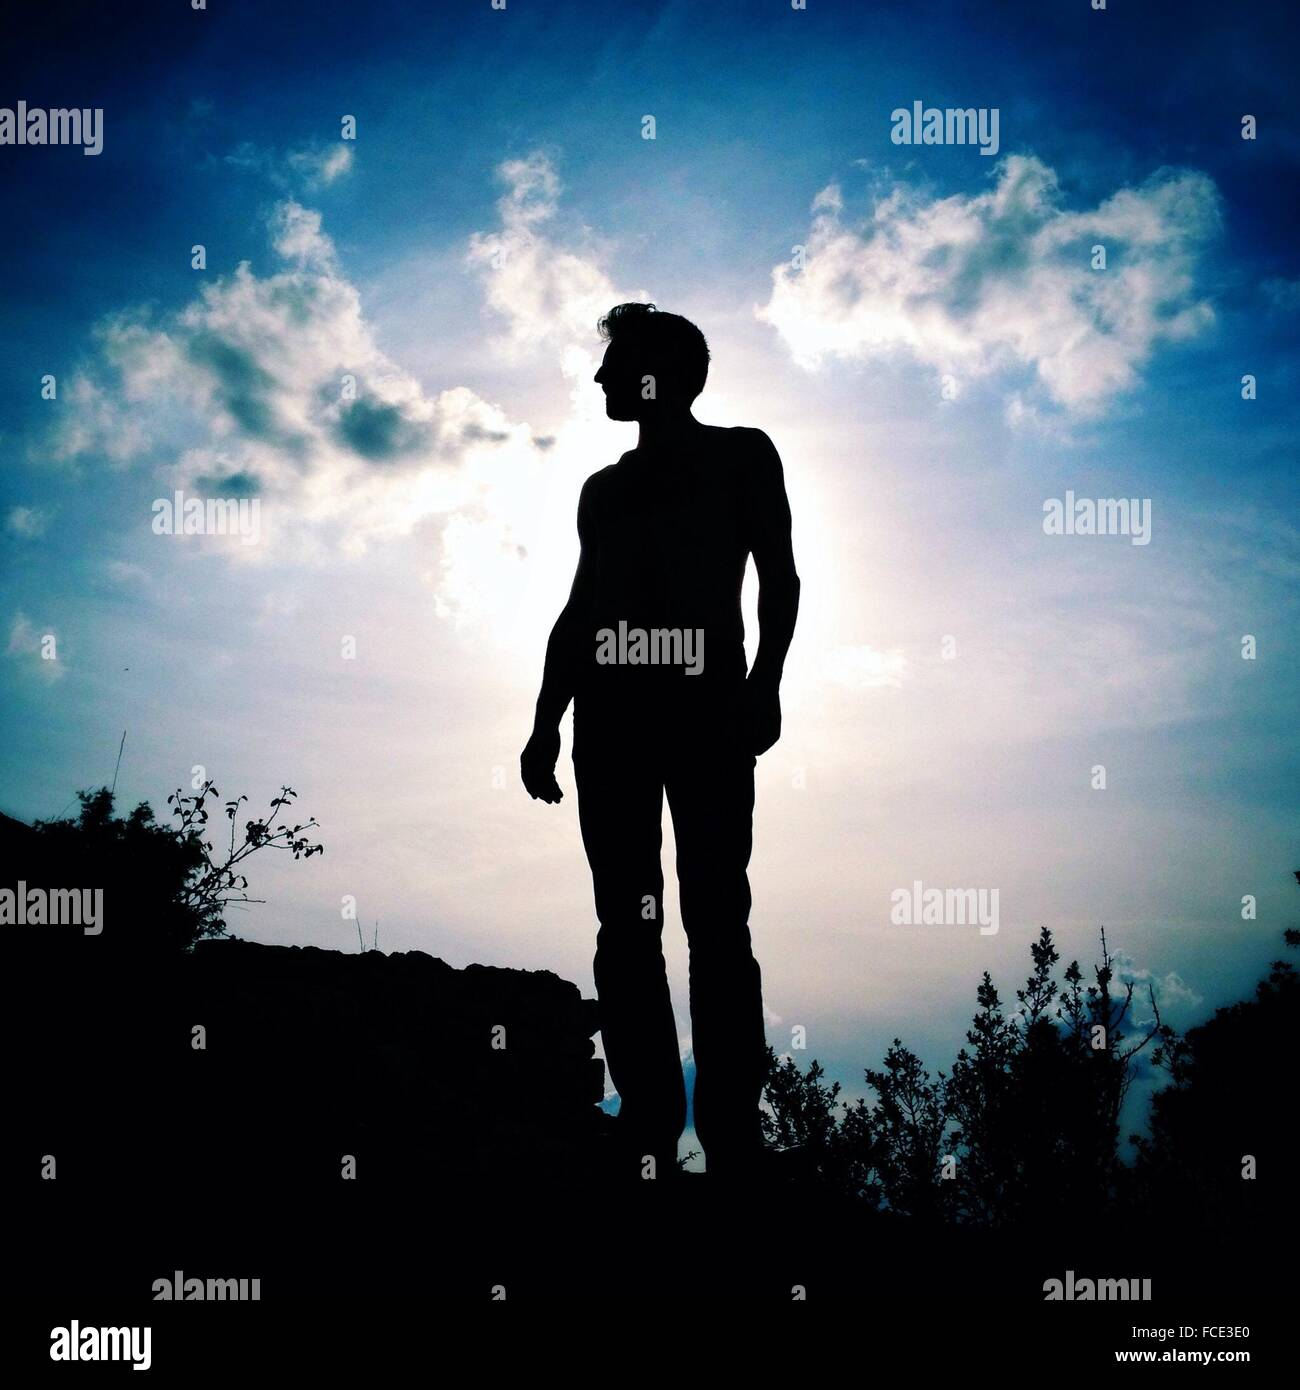 Silhouette Of Man Photo Stock